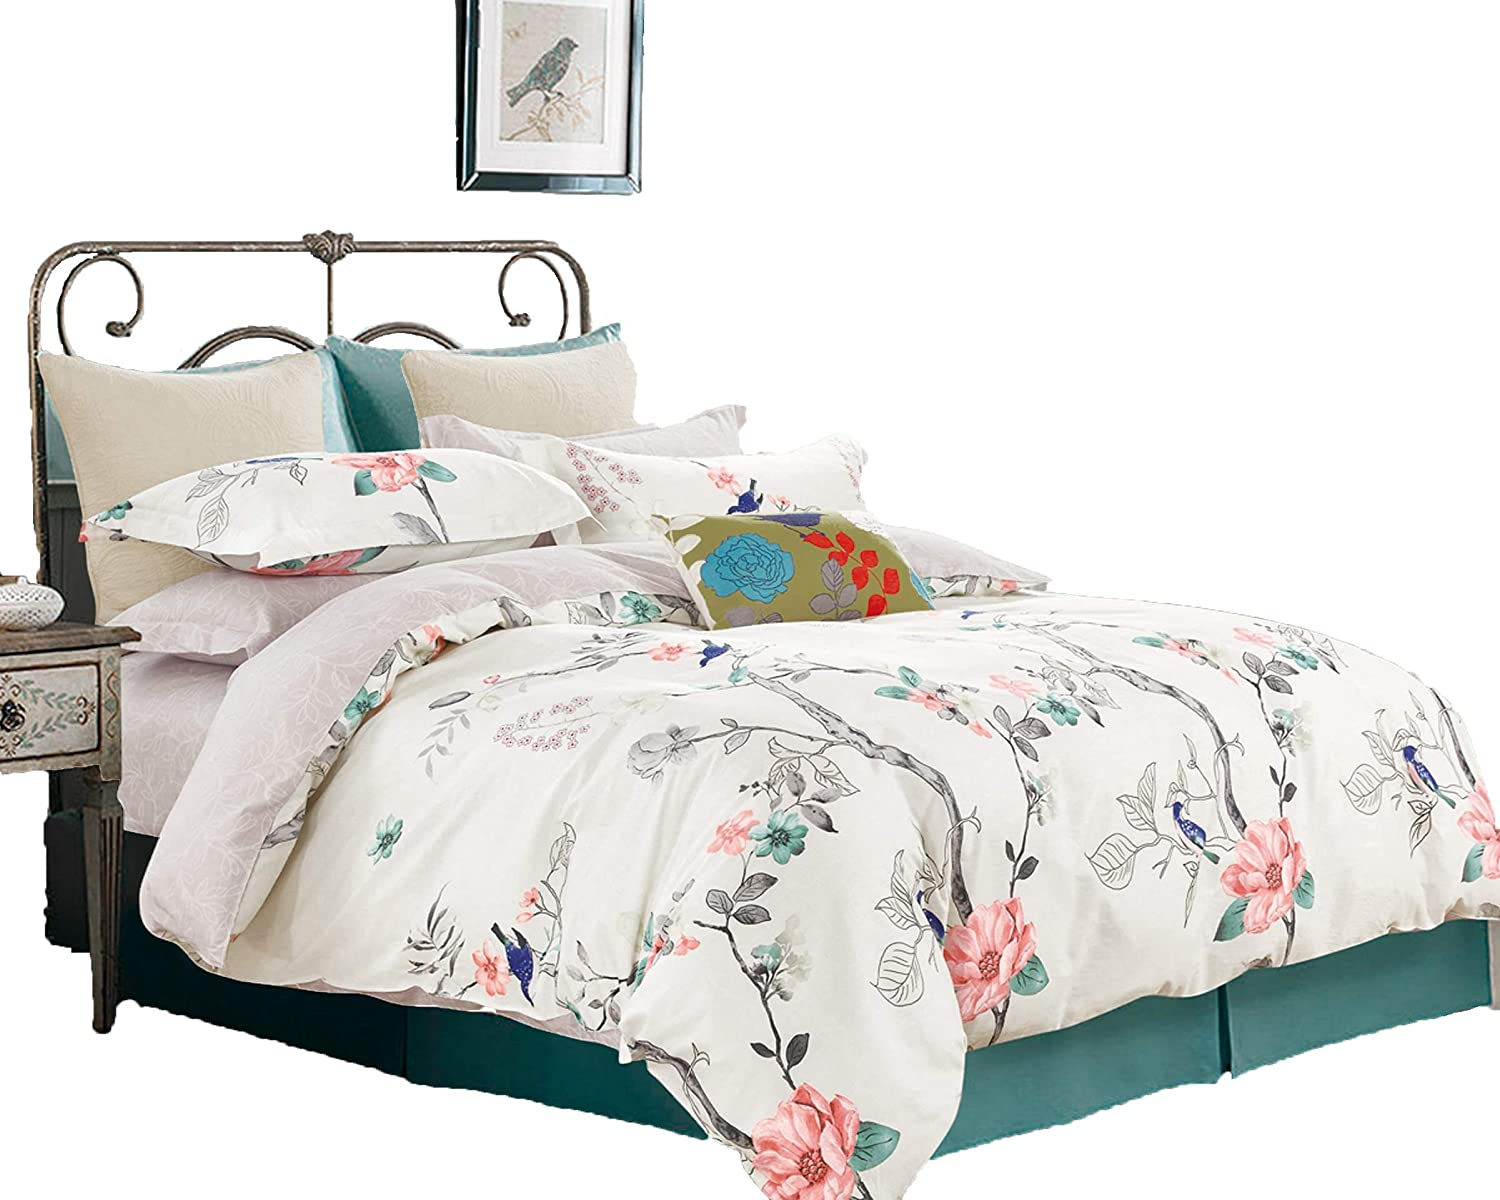 Swanson Beddings Blue Floral 2-Piece 100% Cotton Bedding Set: Duvet Cover and One Pillow Sham (Twin)